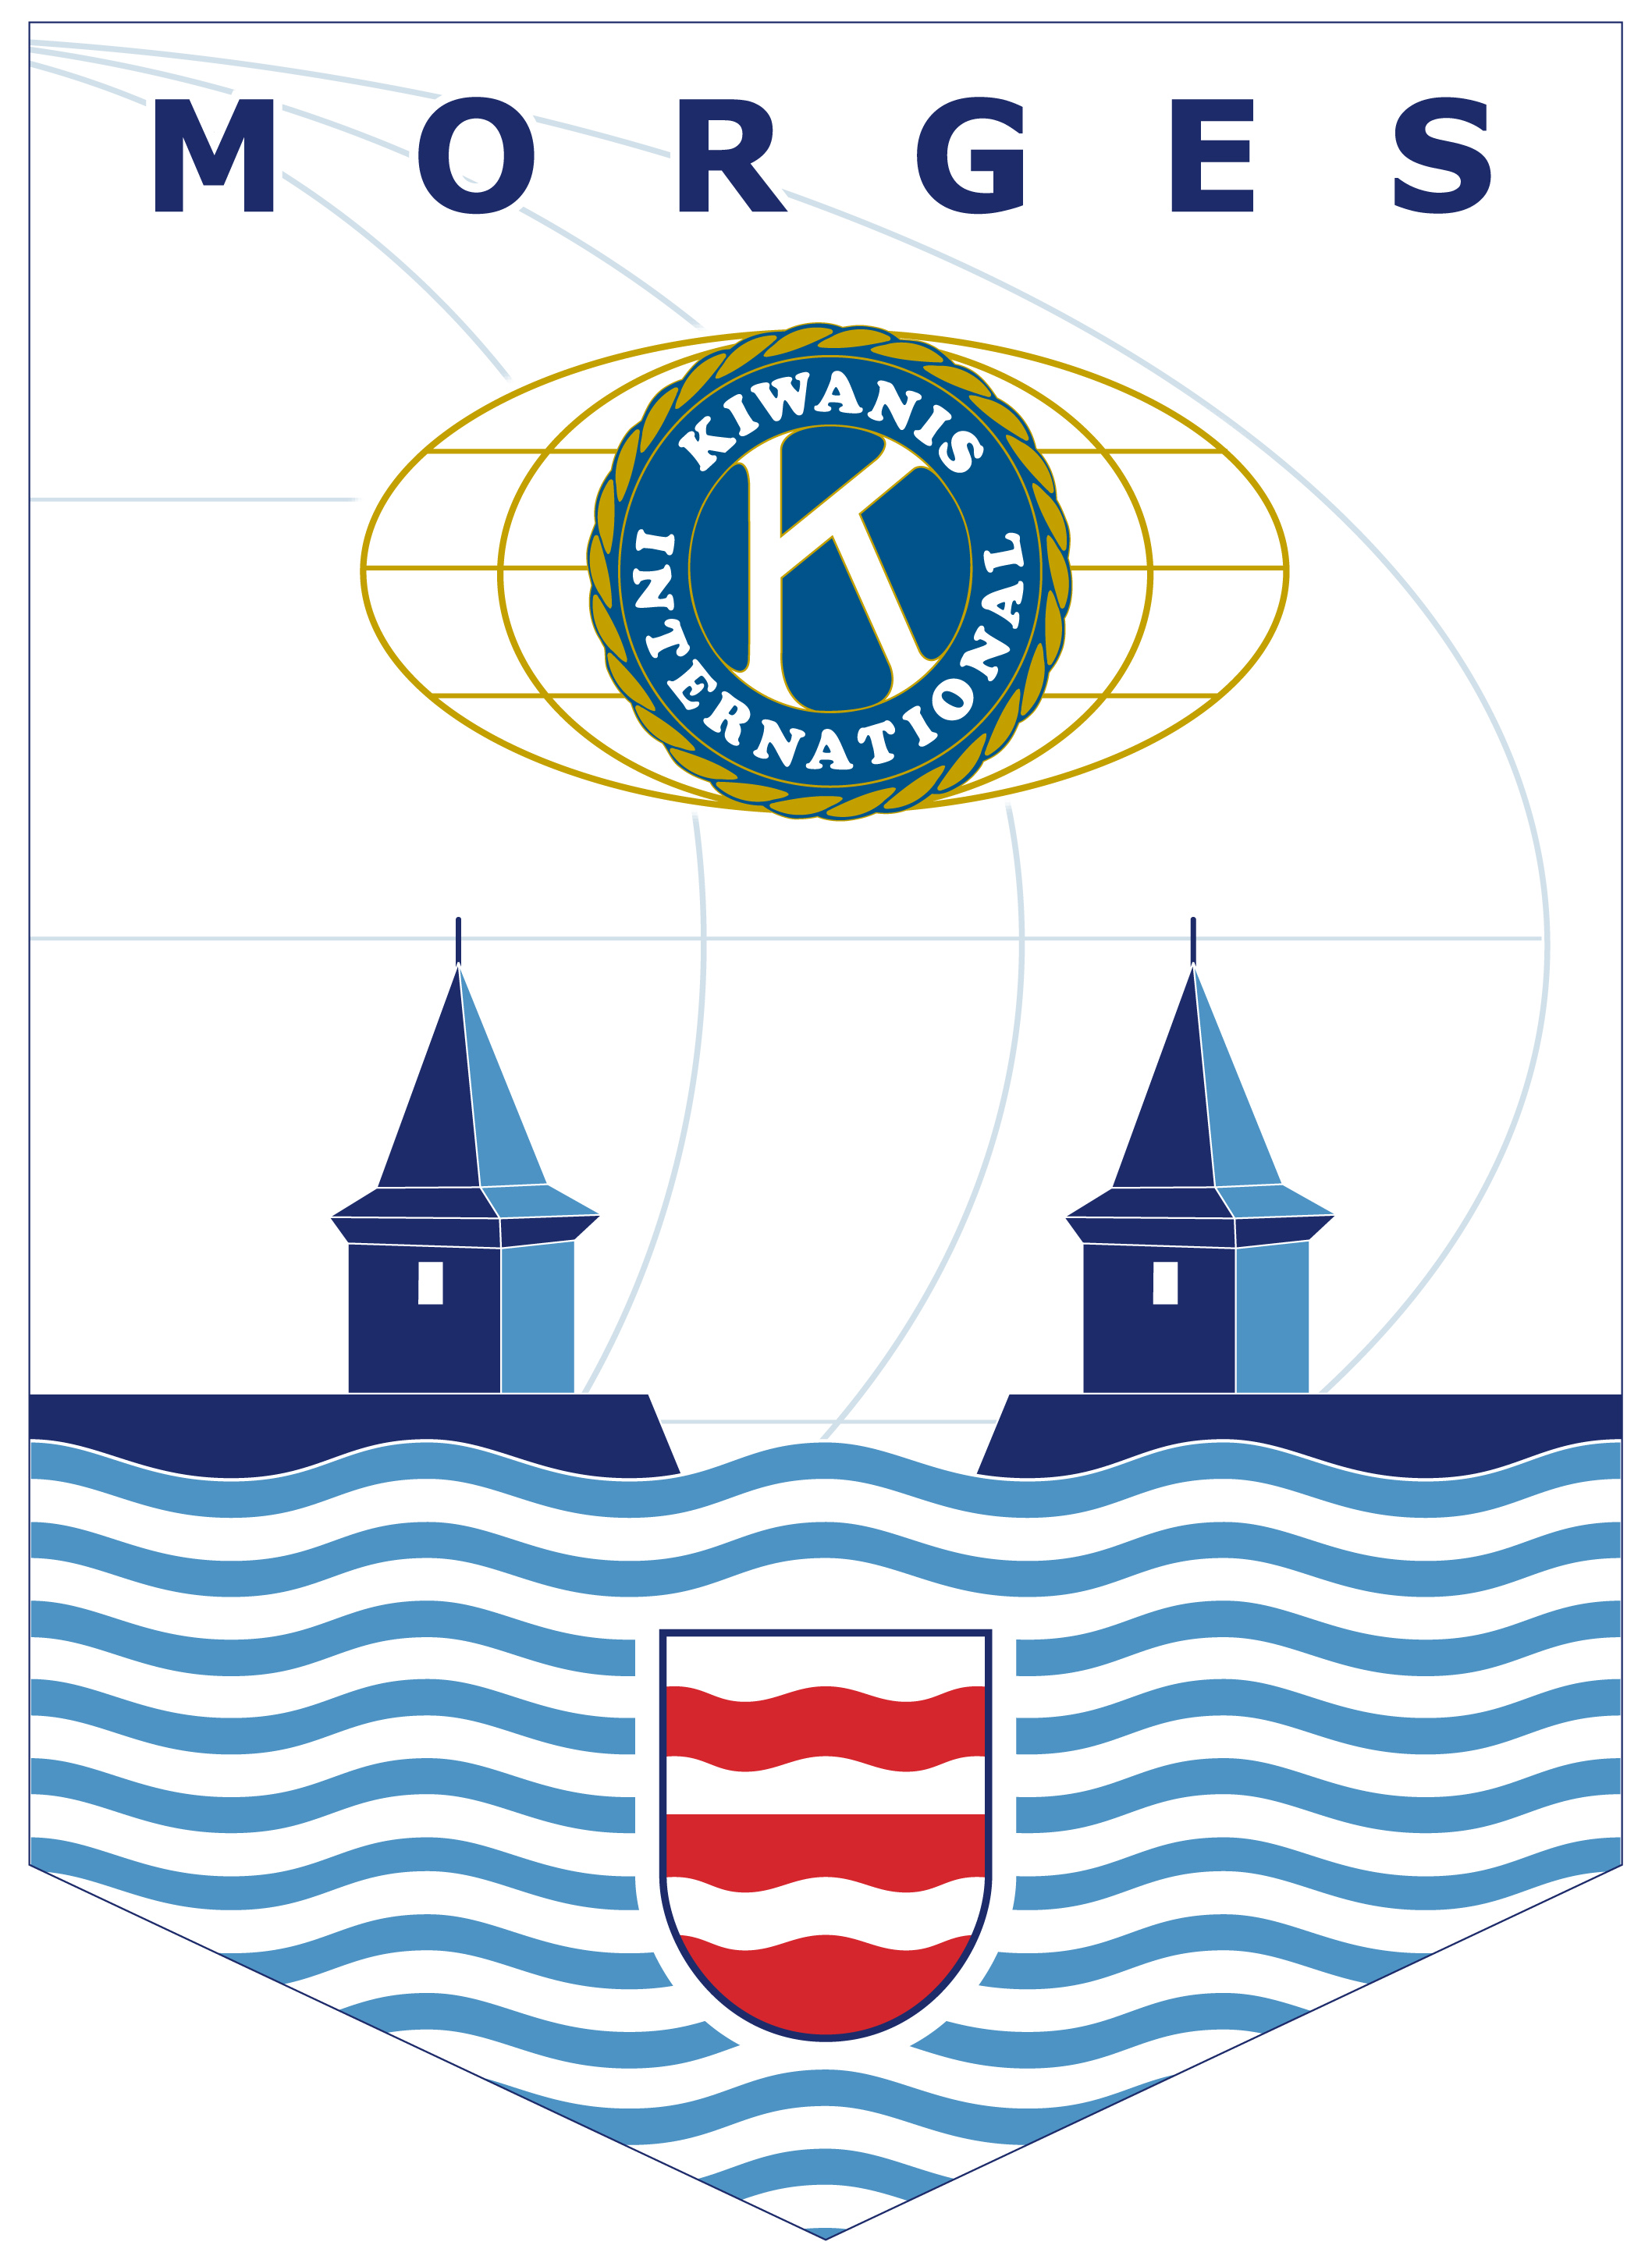 Kiwanis-Club de Morges